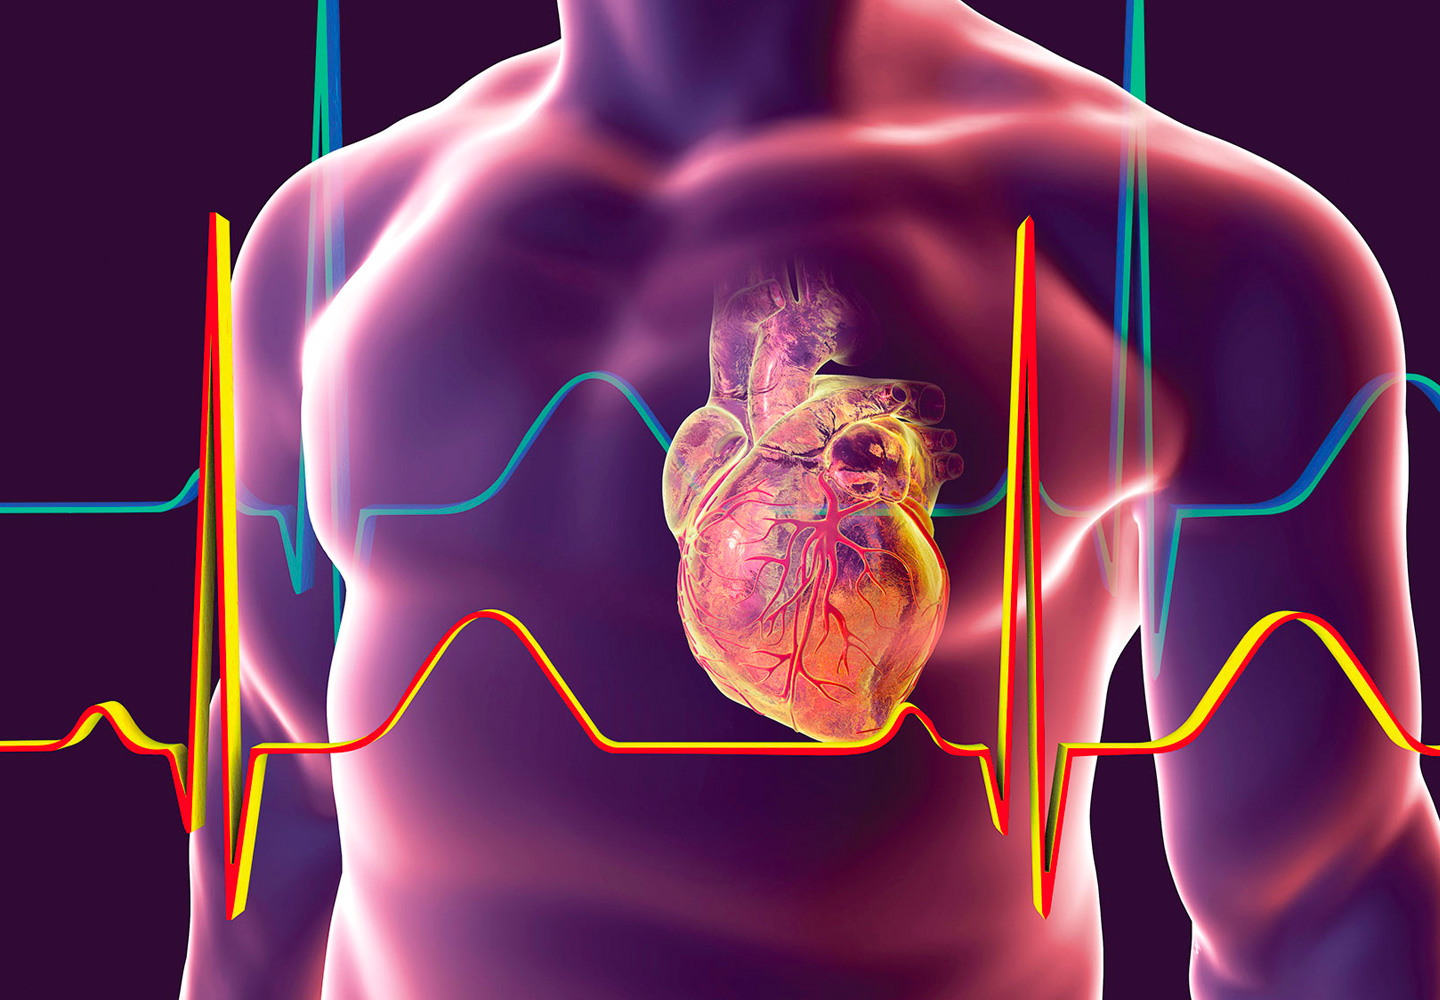 SGLT2 inhibitors in patients with heart failure with reduced ejection fraction: a meta-analysis of the EMPEROR-Reduced and DAPA-HF trials